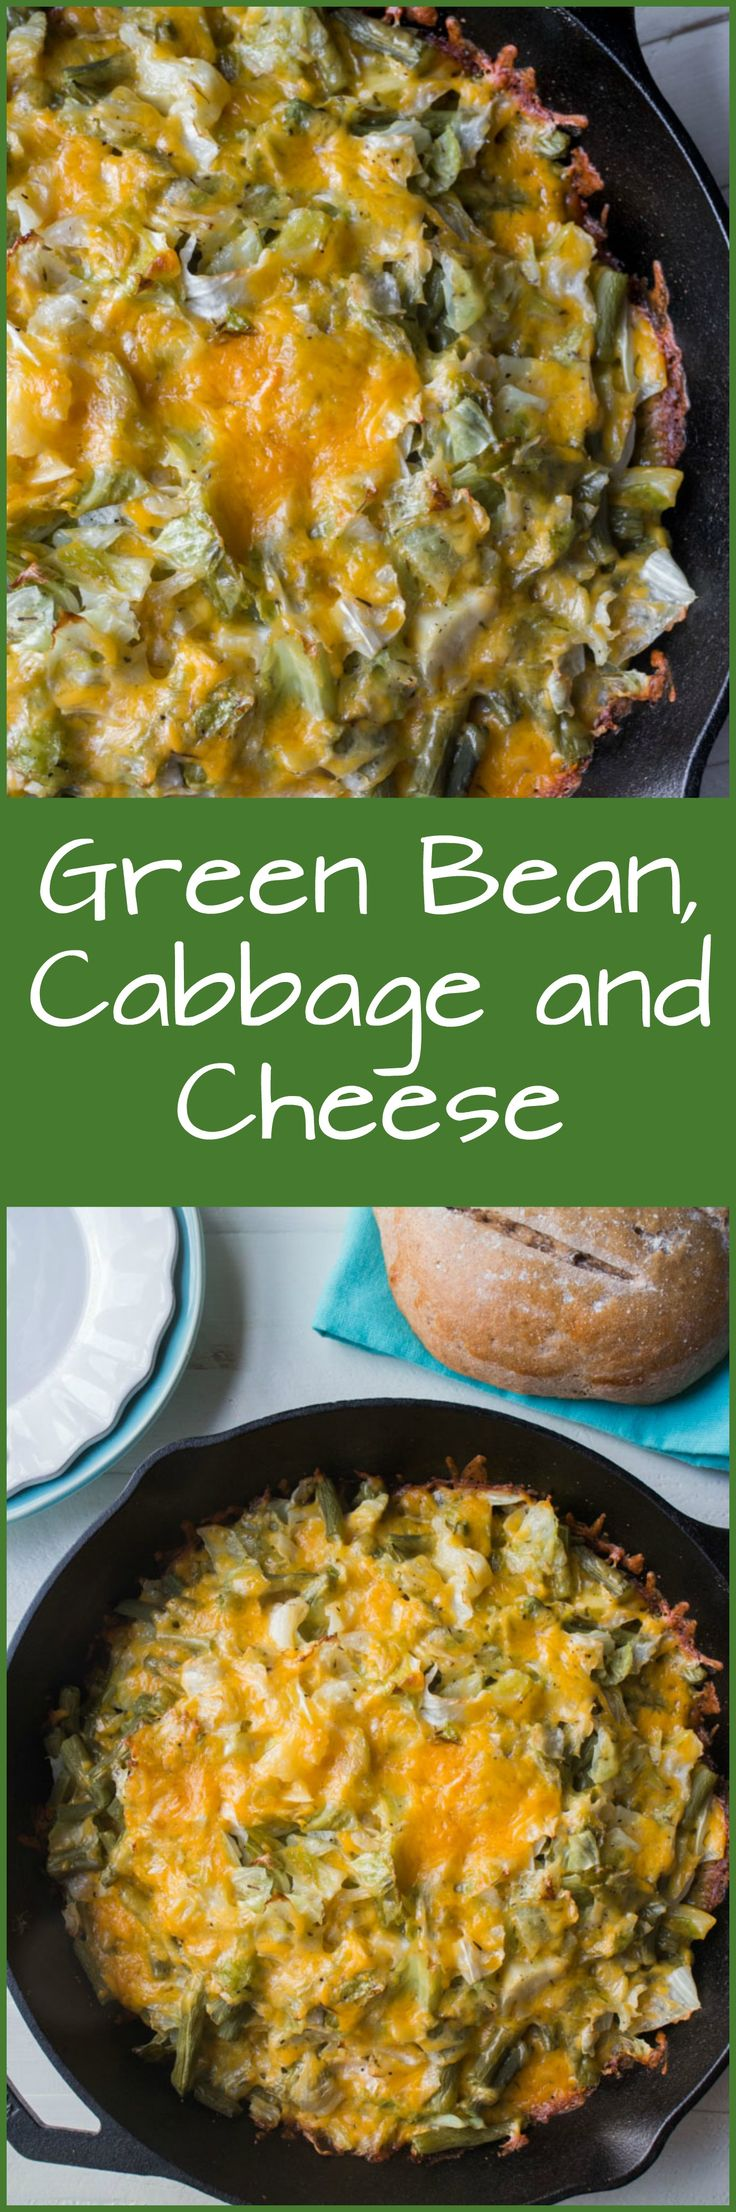 This Green Bean, Cabbage and Cheese casserole is just like Macaroni and Cheese but without the pasta!  It makes a great side dish for Thanksgiving and Christmas dinner! It's a savory, comforting, cheesy dish that uses fresh vegetables.